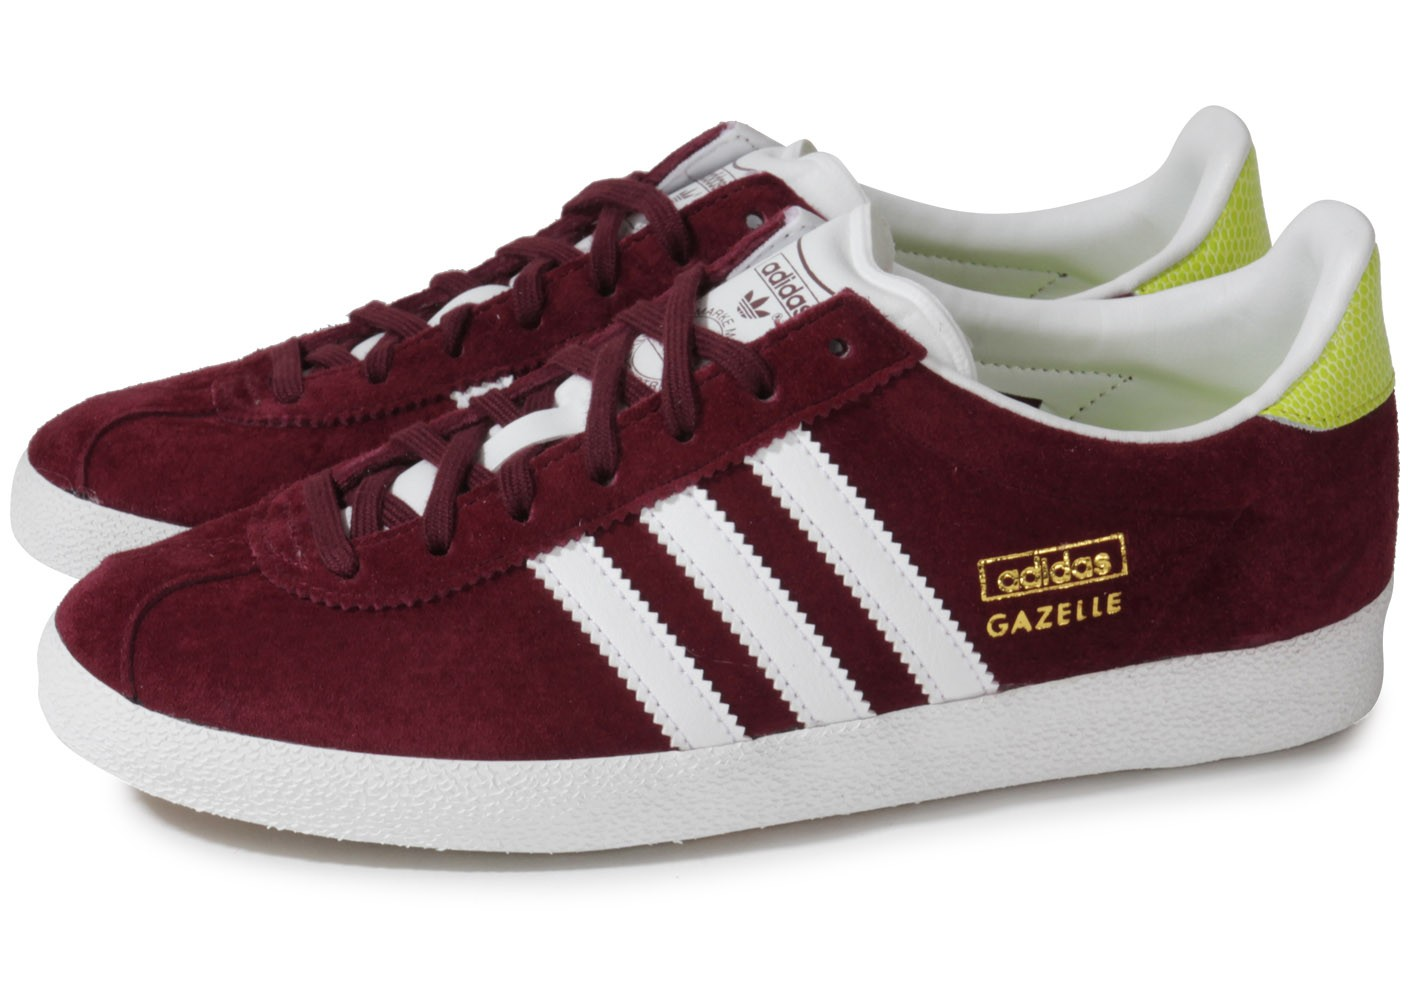 Rouge Adidas Originals Gazelle Baskets Bordeaux Bb5255